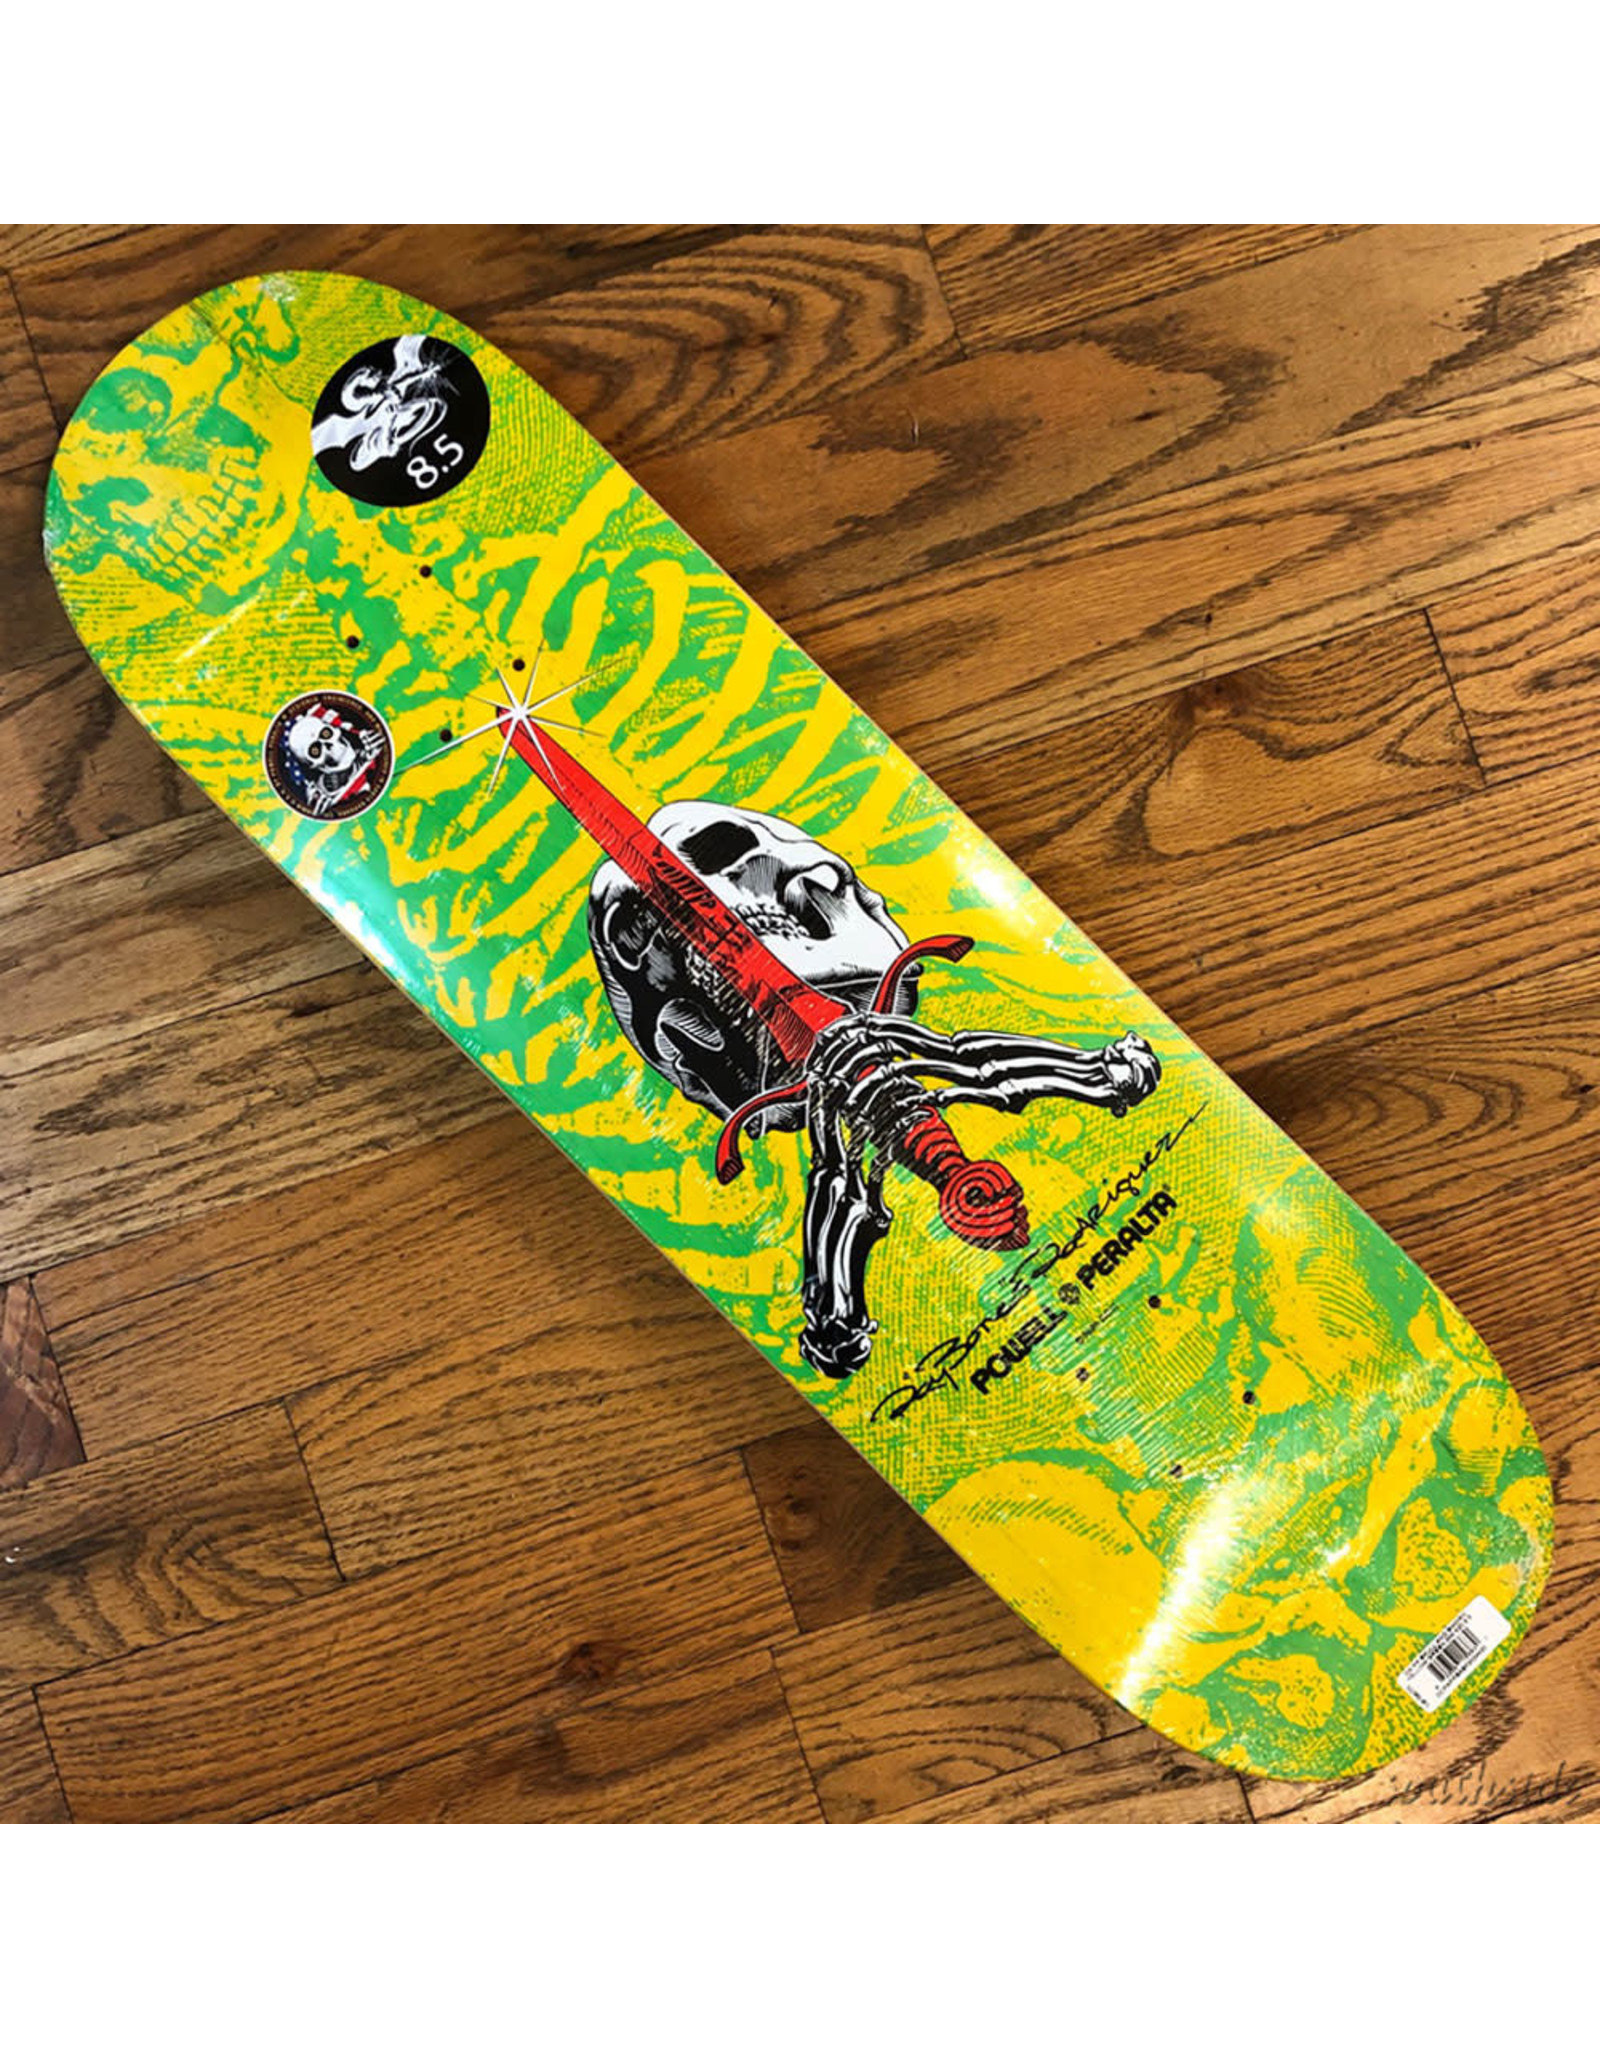 Powell Deck Sword and Skull Yellow Green 8.5x32